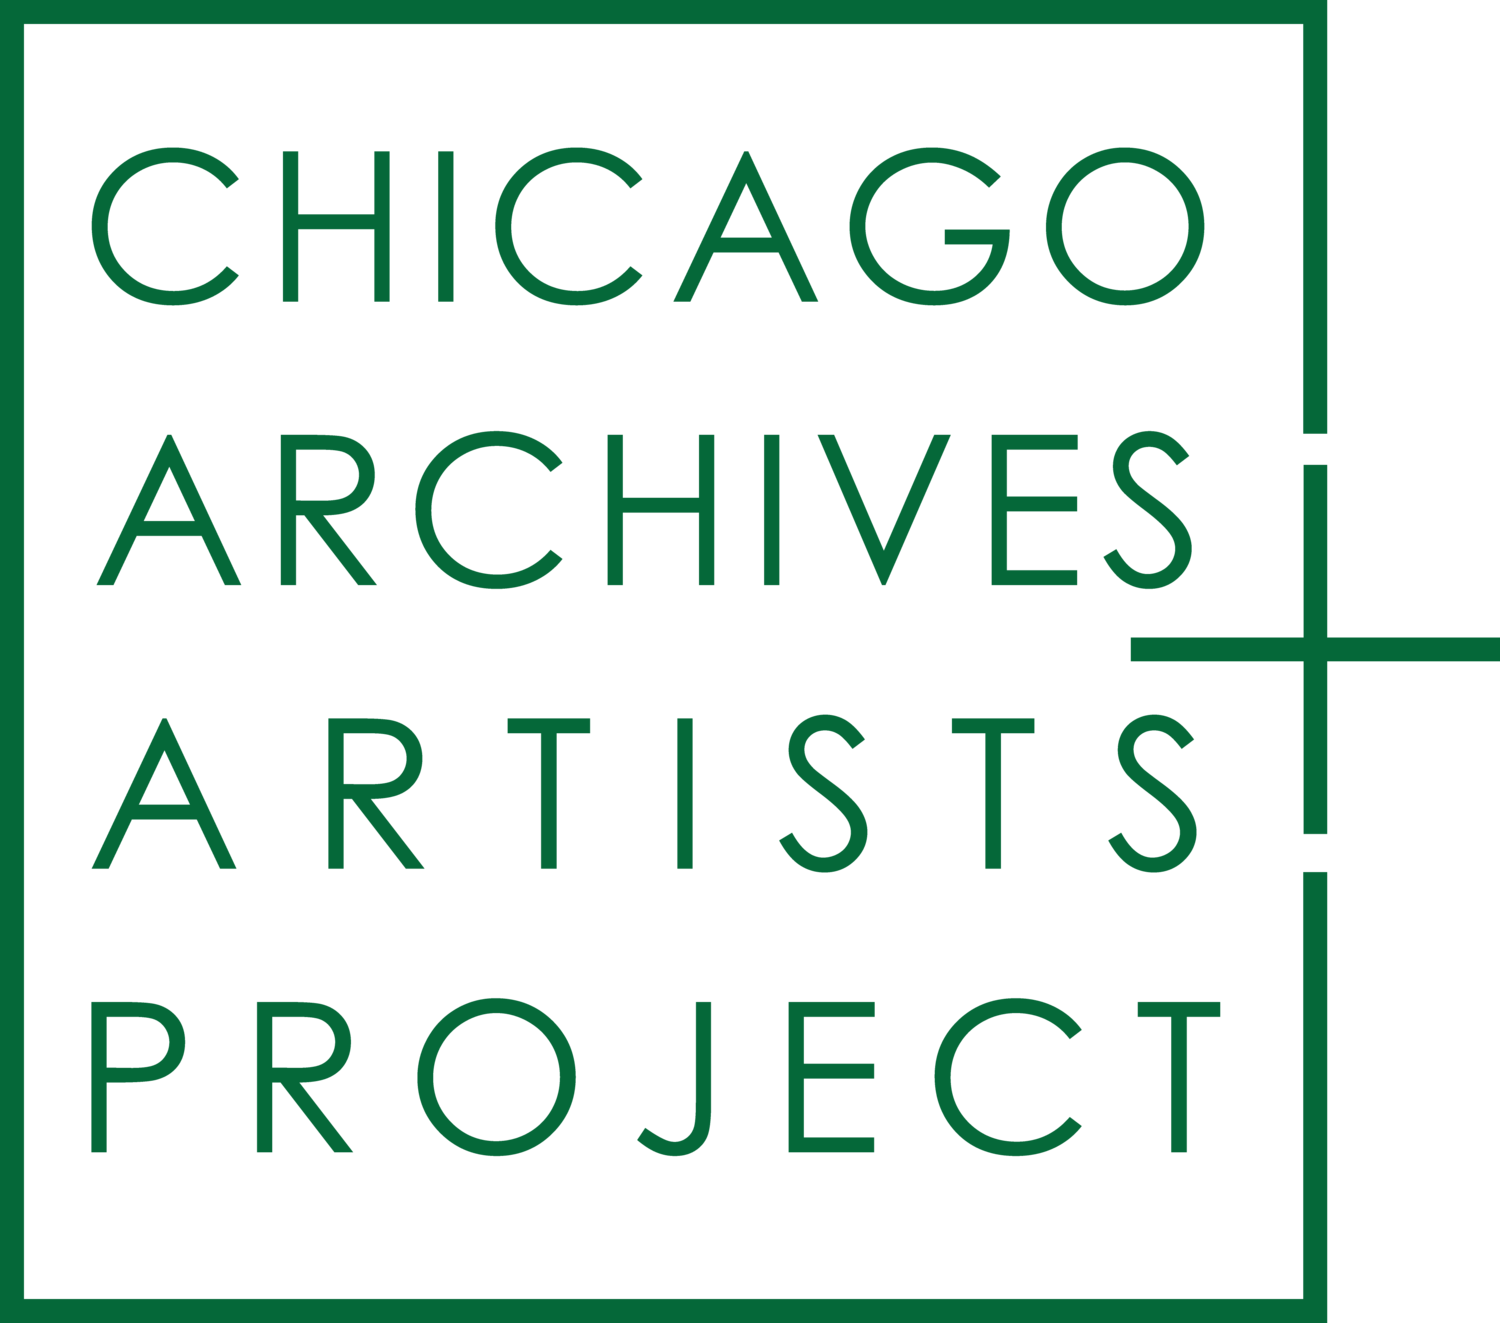 Chicago Archives + Artists Project